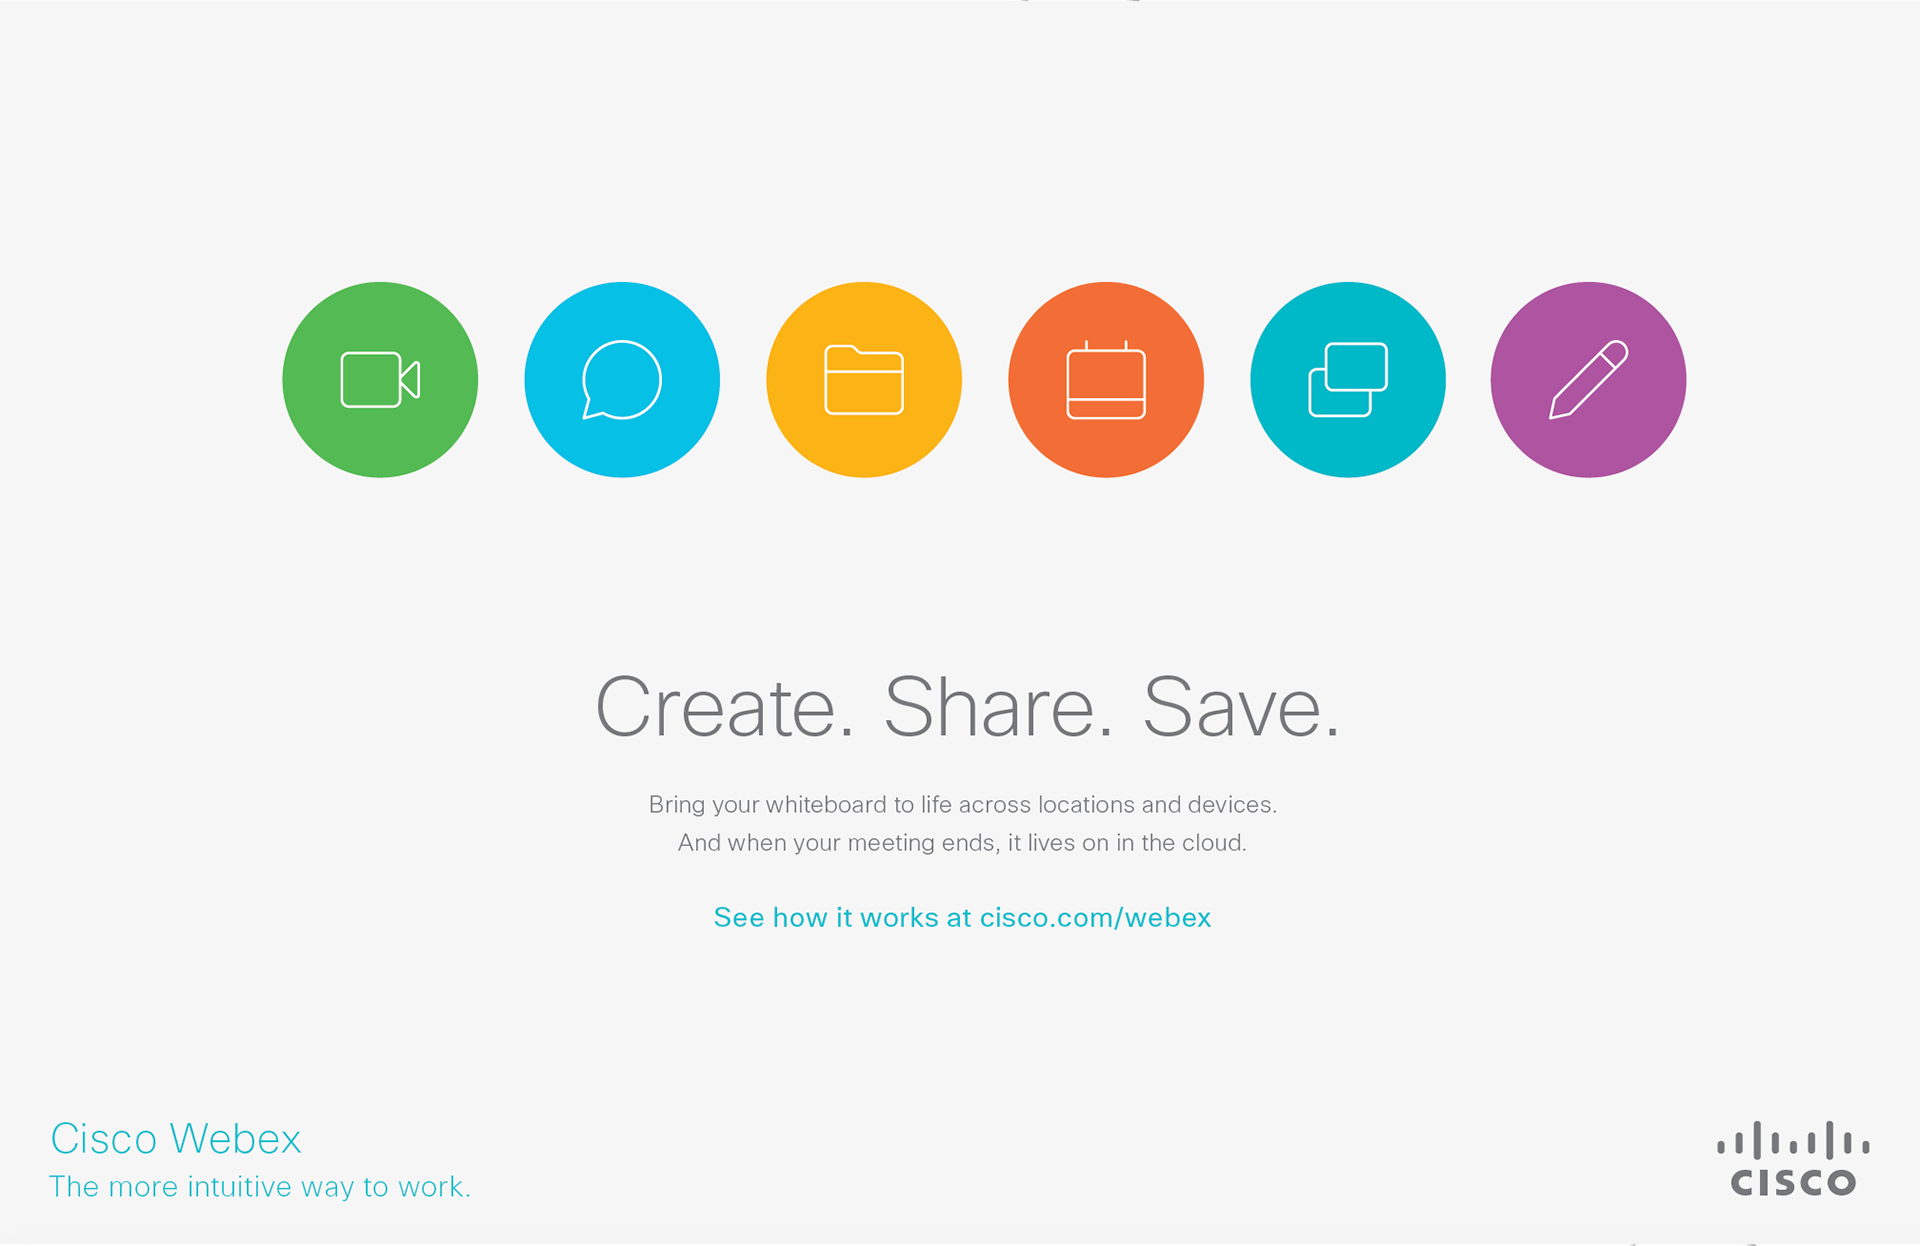 CISCO Webex Social Media Conference Graphics on Behance